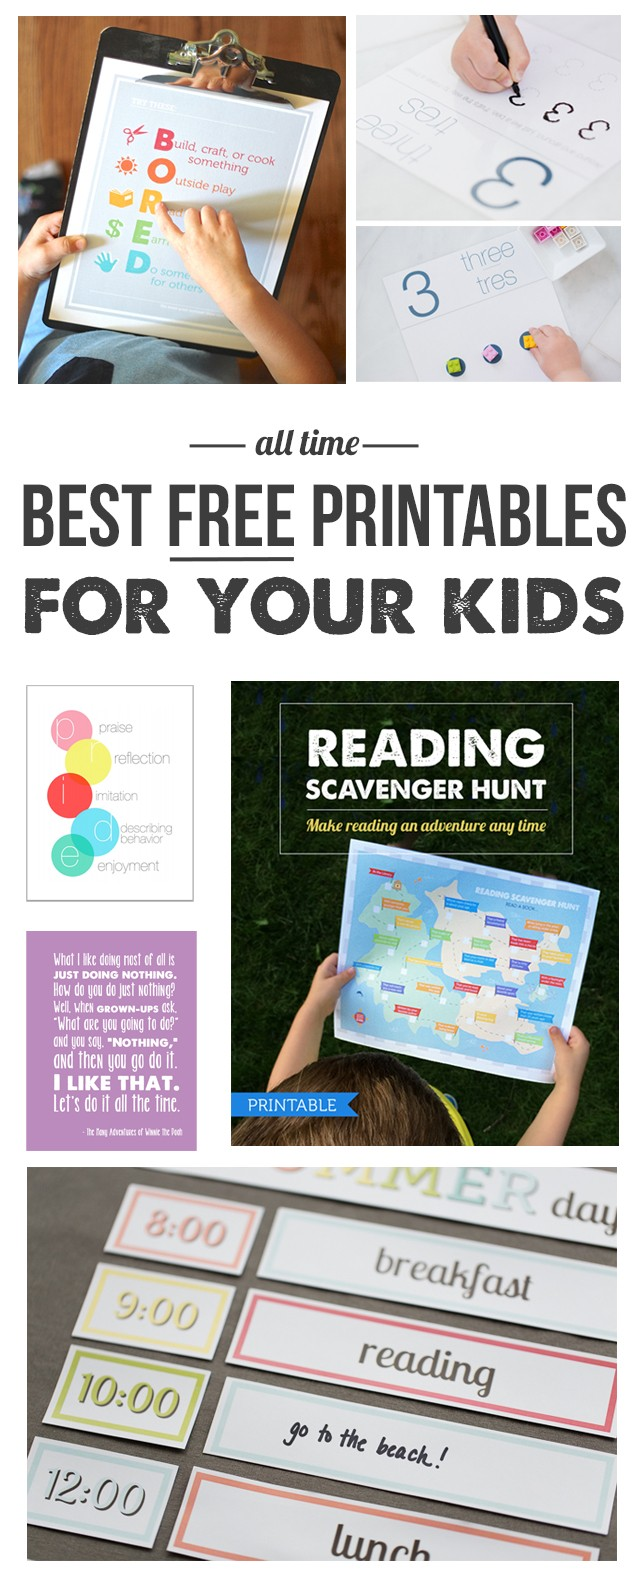 Free Printables for Kids: Love all of these! Especially the knock-knock joke Advent calendar, reading scavenger hunt and kids' drawer organization labels!